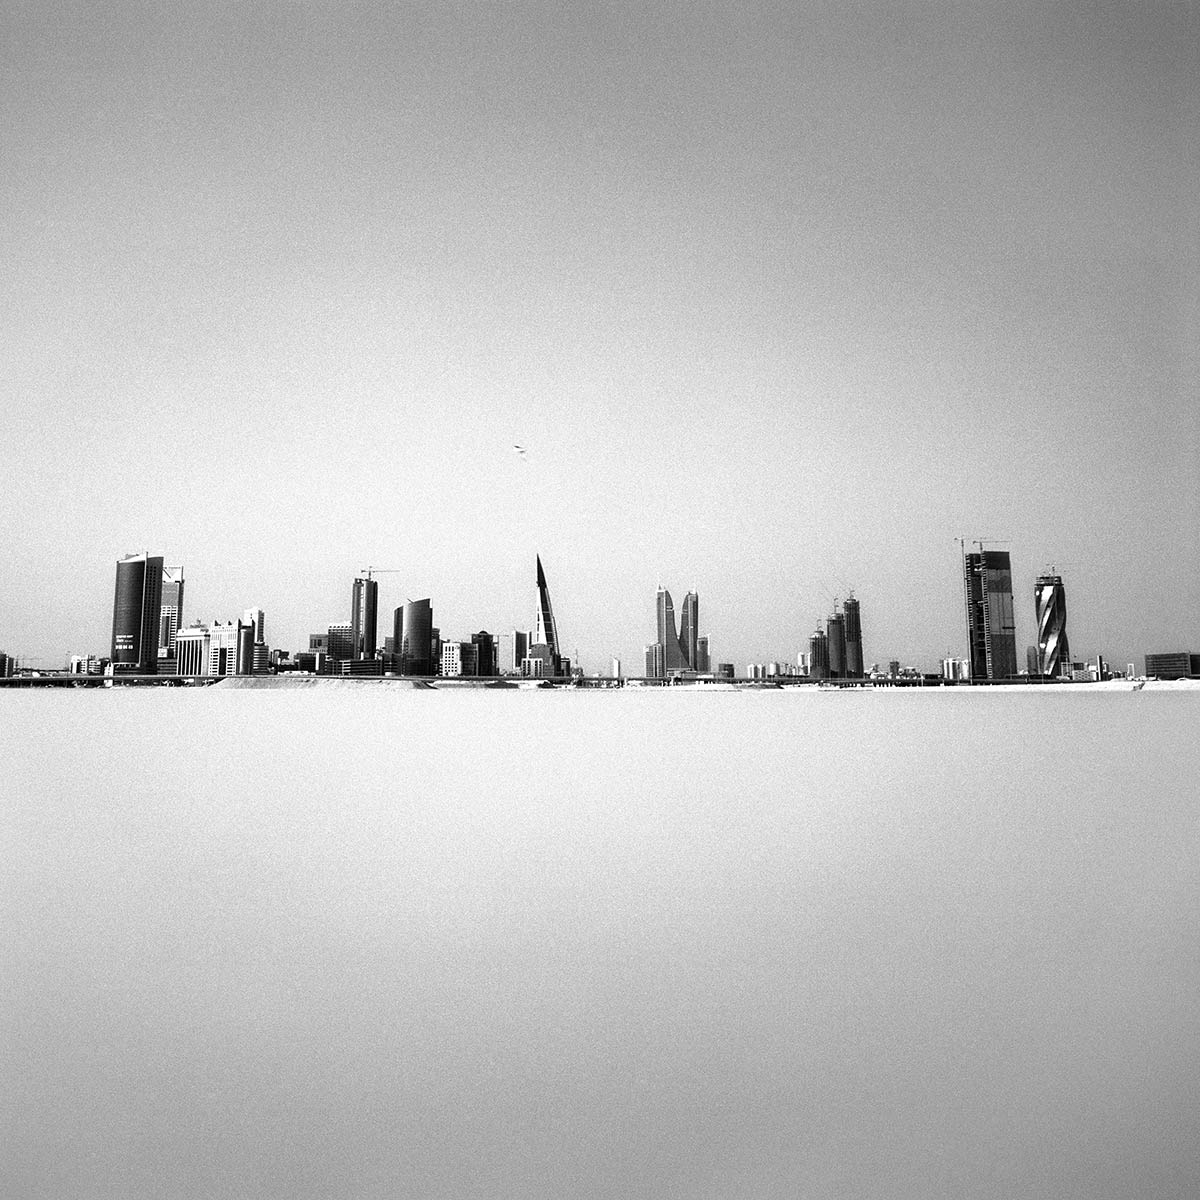 Nicène Kossentini, The city in the Sky VII, 2013. Black and white photography (digital print on Hahnemuhle Fine Art Baryta) 120 x 120 cm. Edition of 5. The City in the Sky series. Courtesy of the artist.